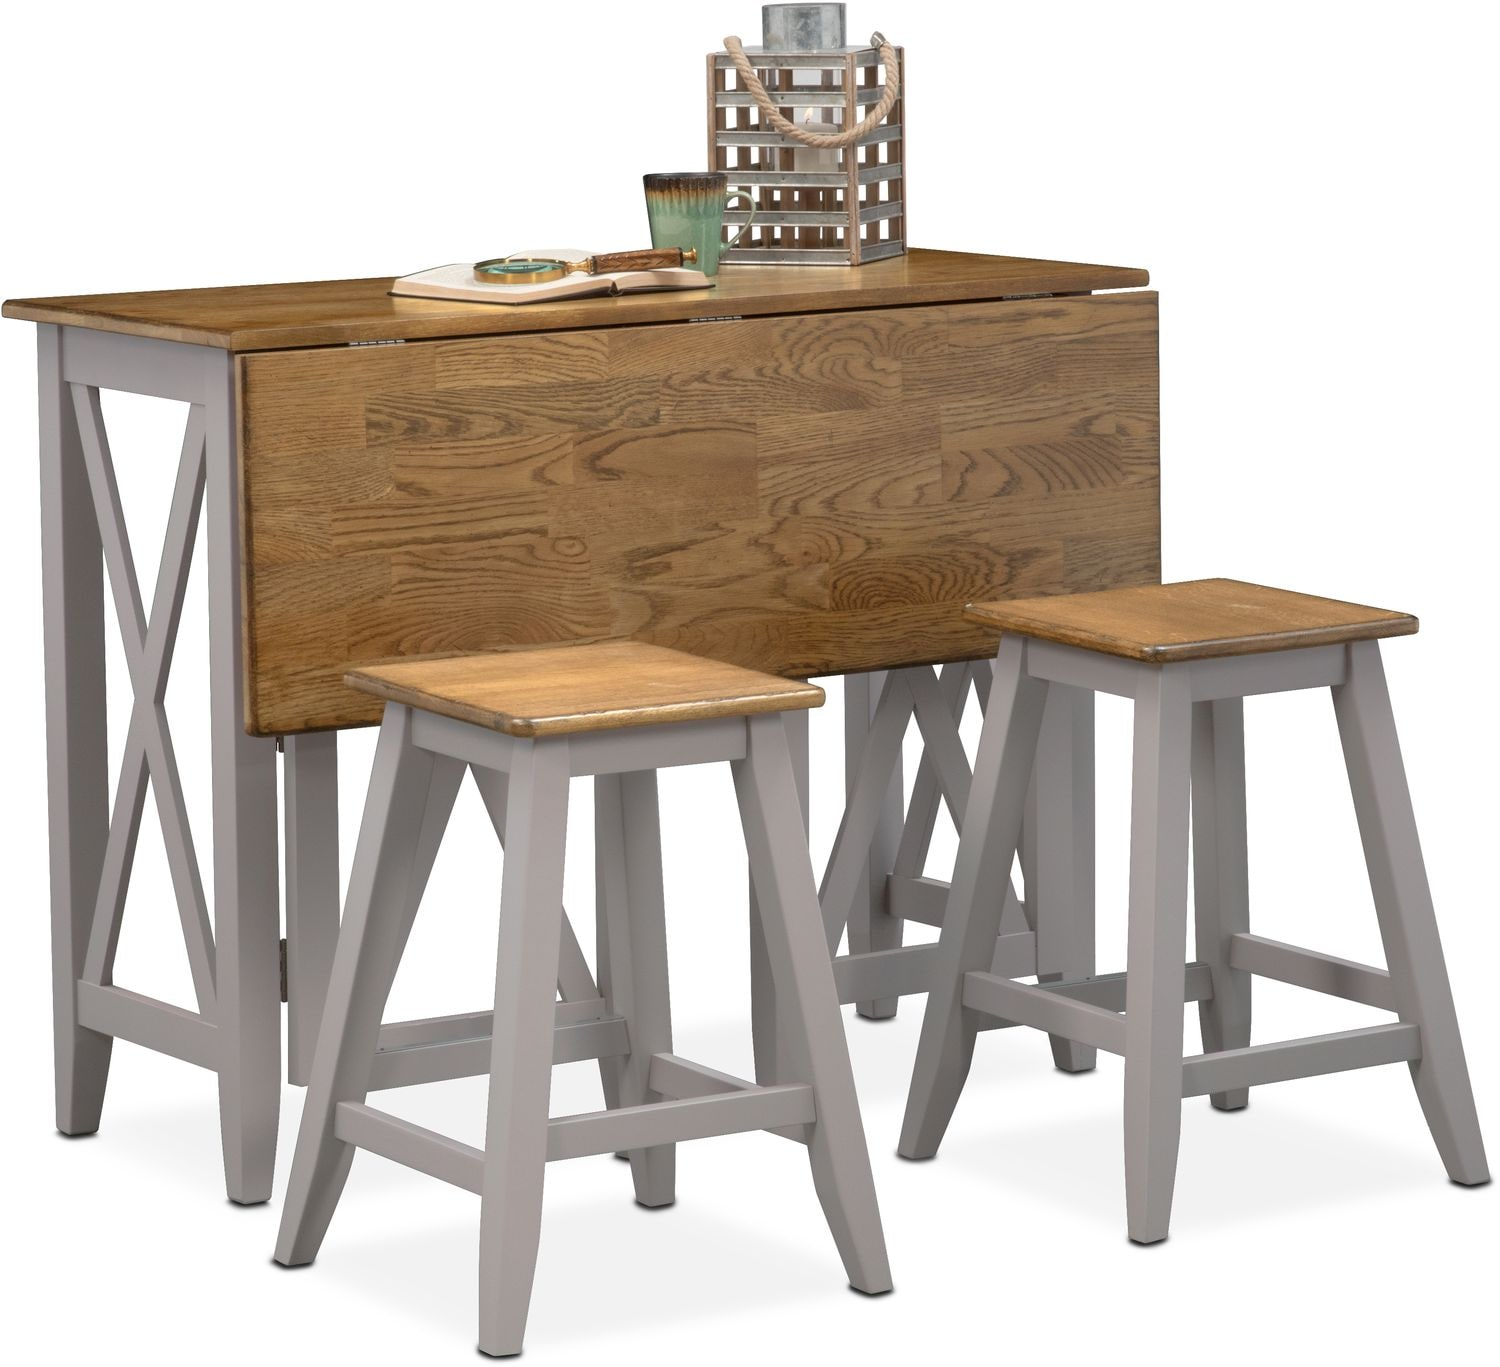 Nantucket Breakfast Bar And 2 Counter Height Stools Oak